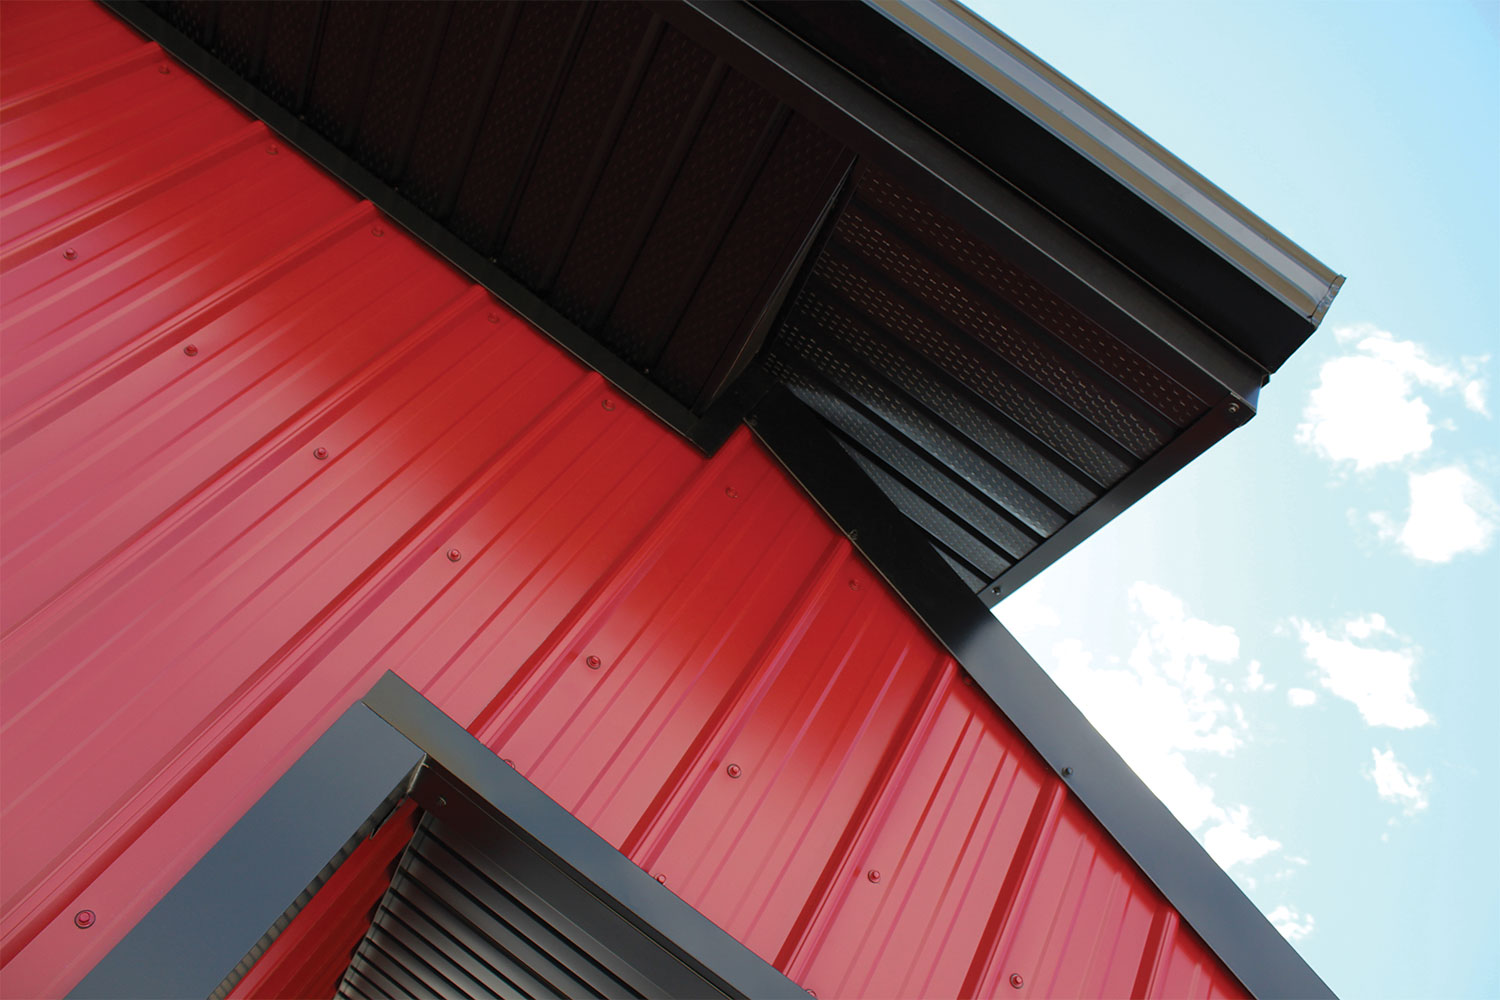 Commercial Building with FC-36 Panel in Dark Red